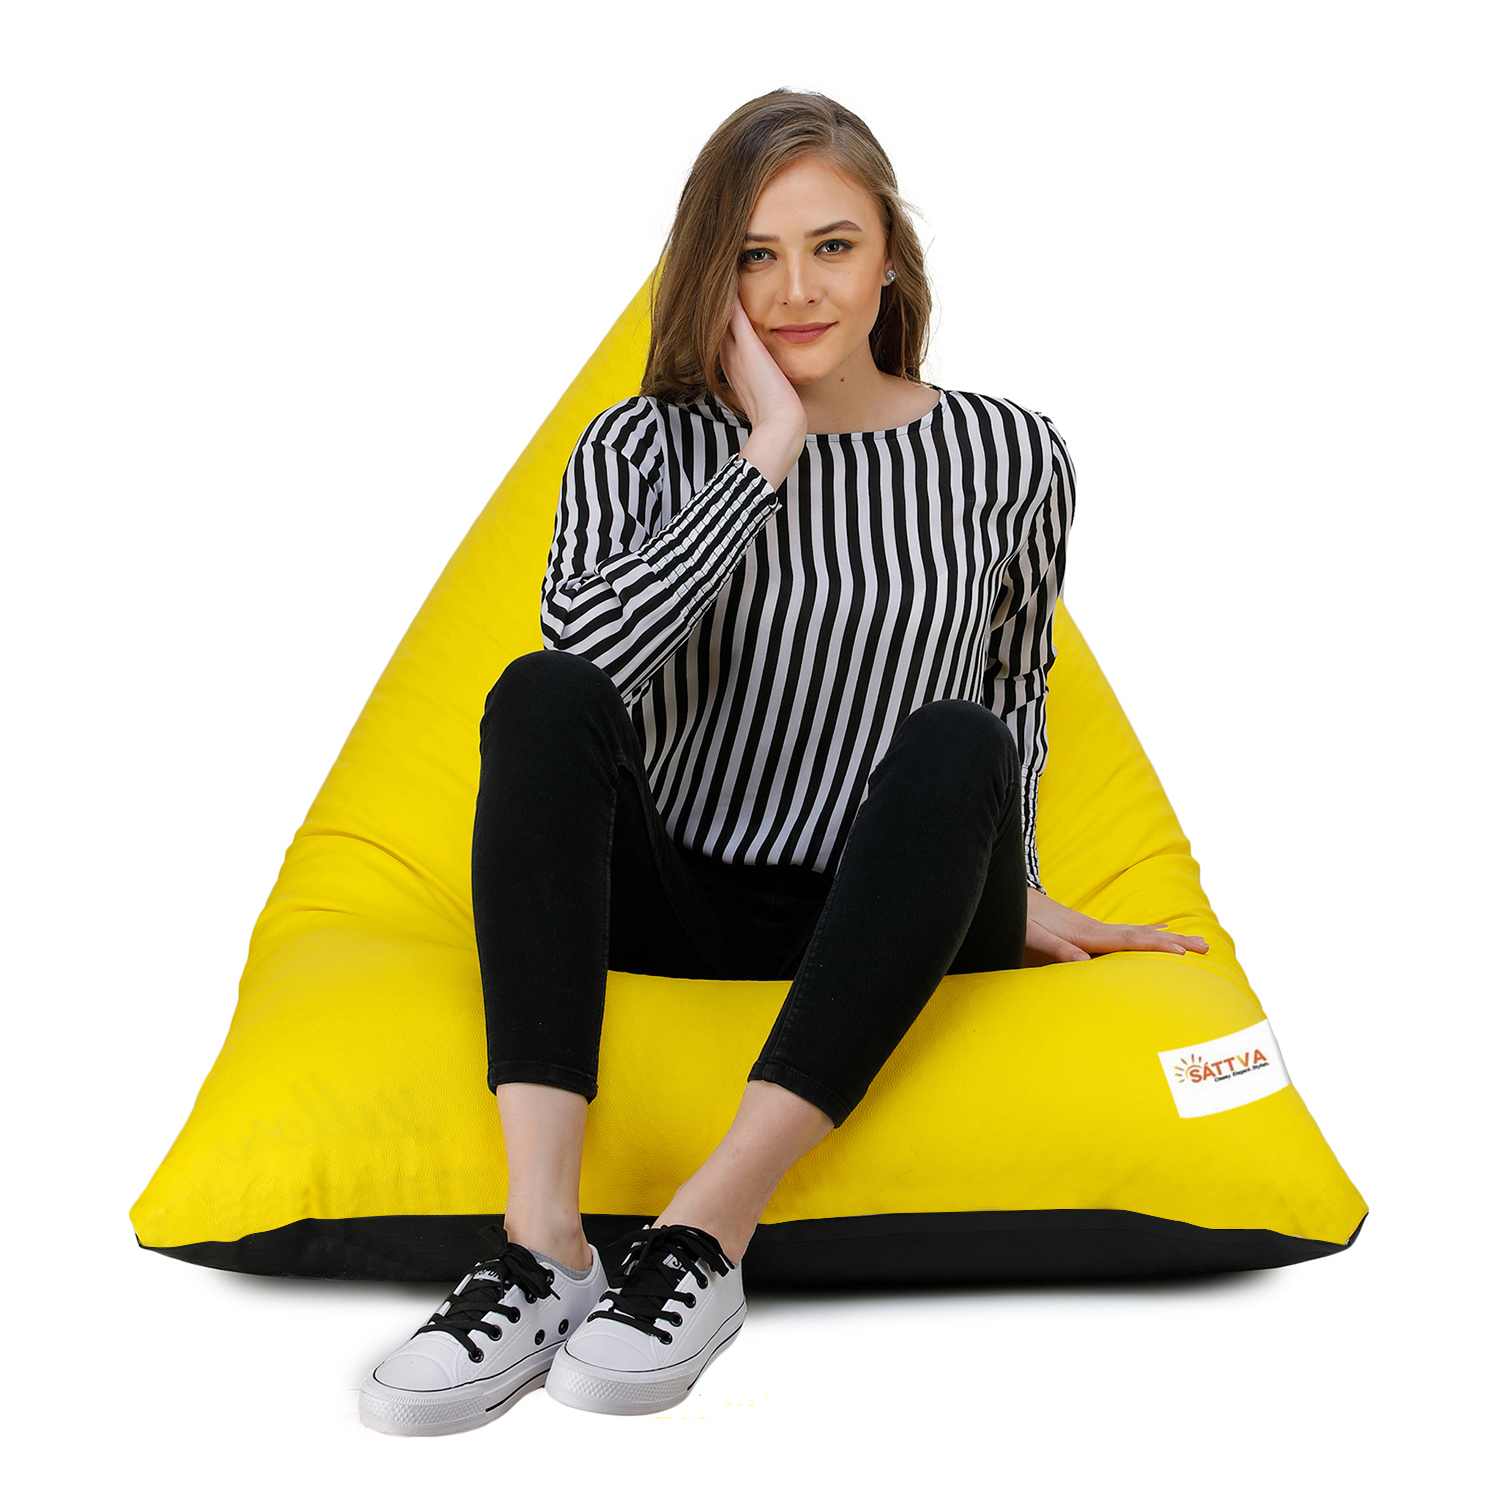 Sattva Triangle Shaped Bean Bag Chair Filled (with Beans) Colour - Black Yellow